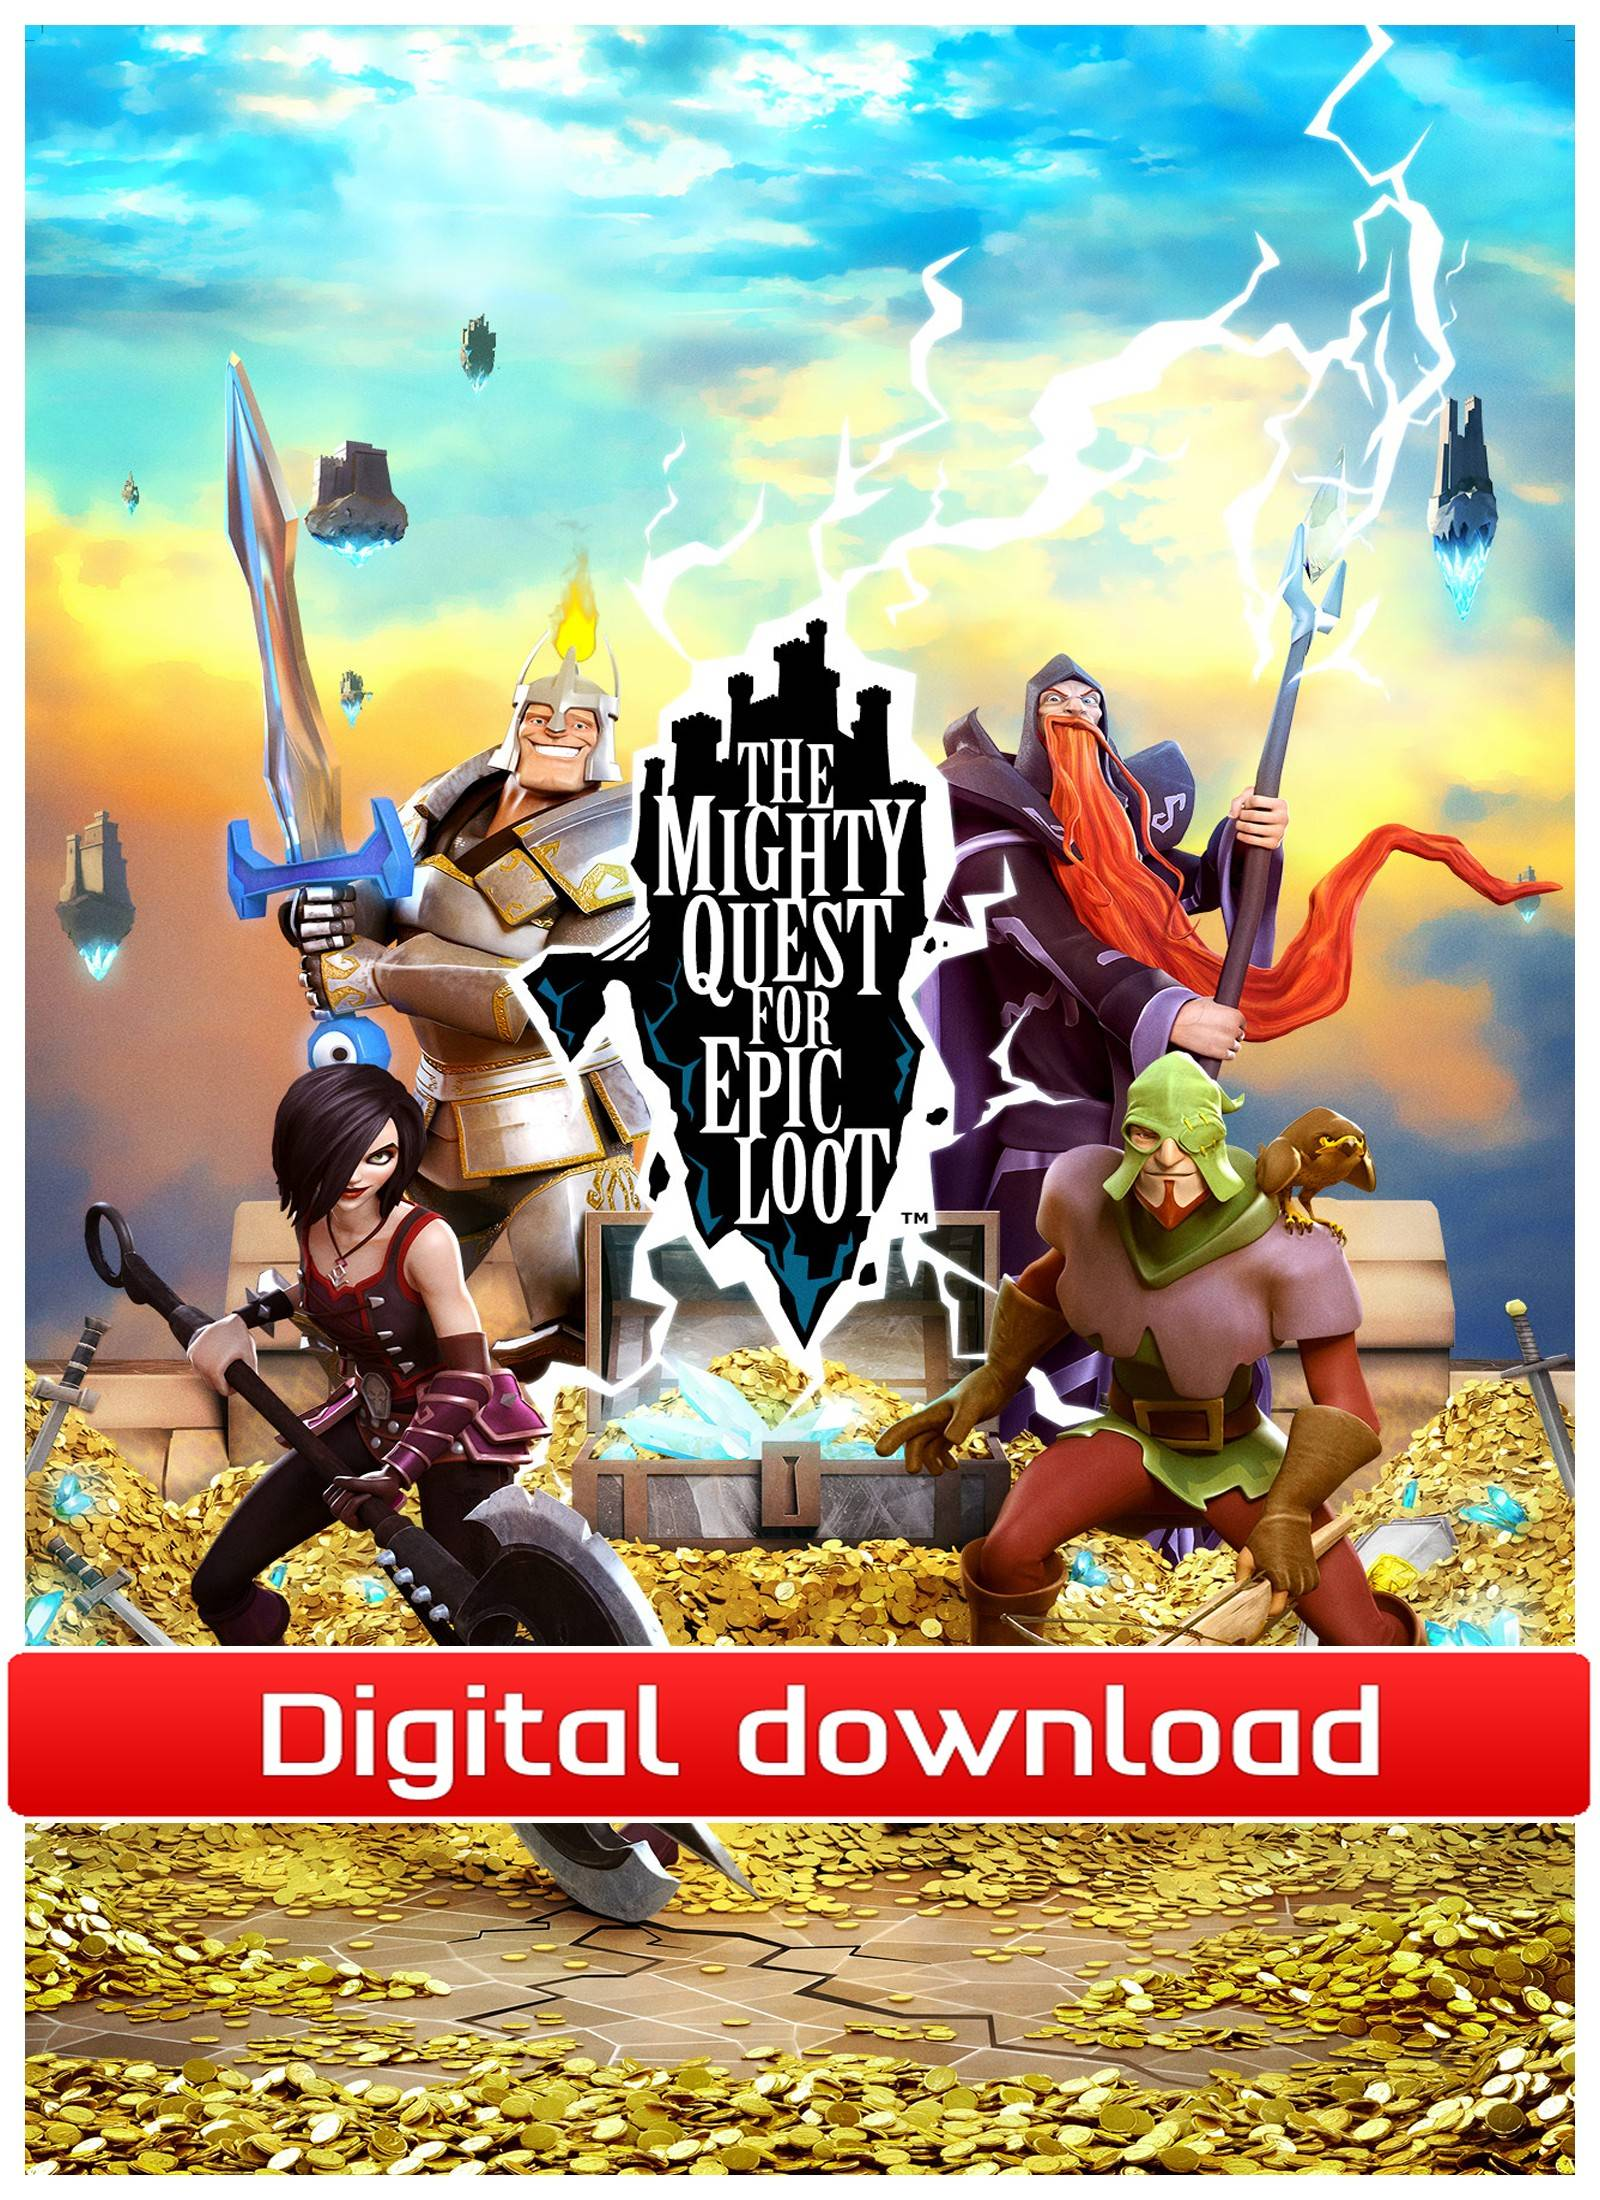 Ubisoft The Mighty Quest for Epic Loot - Supply Pack (Downl)